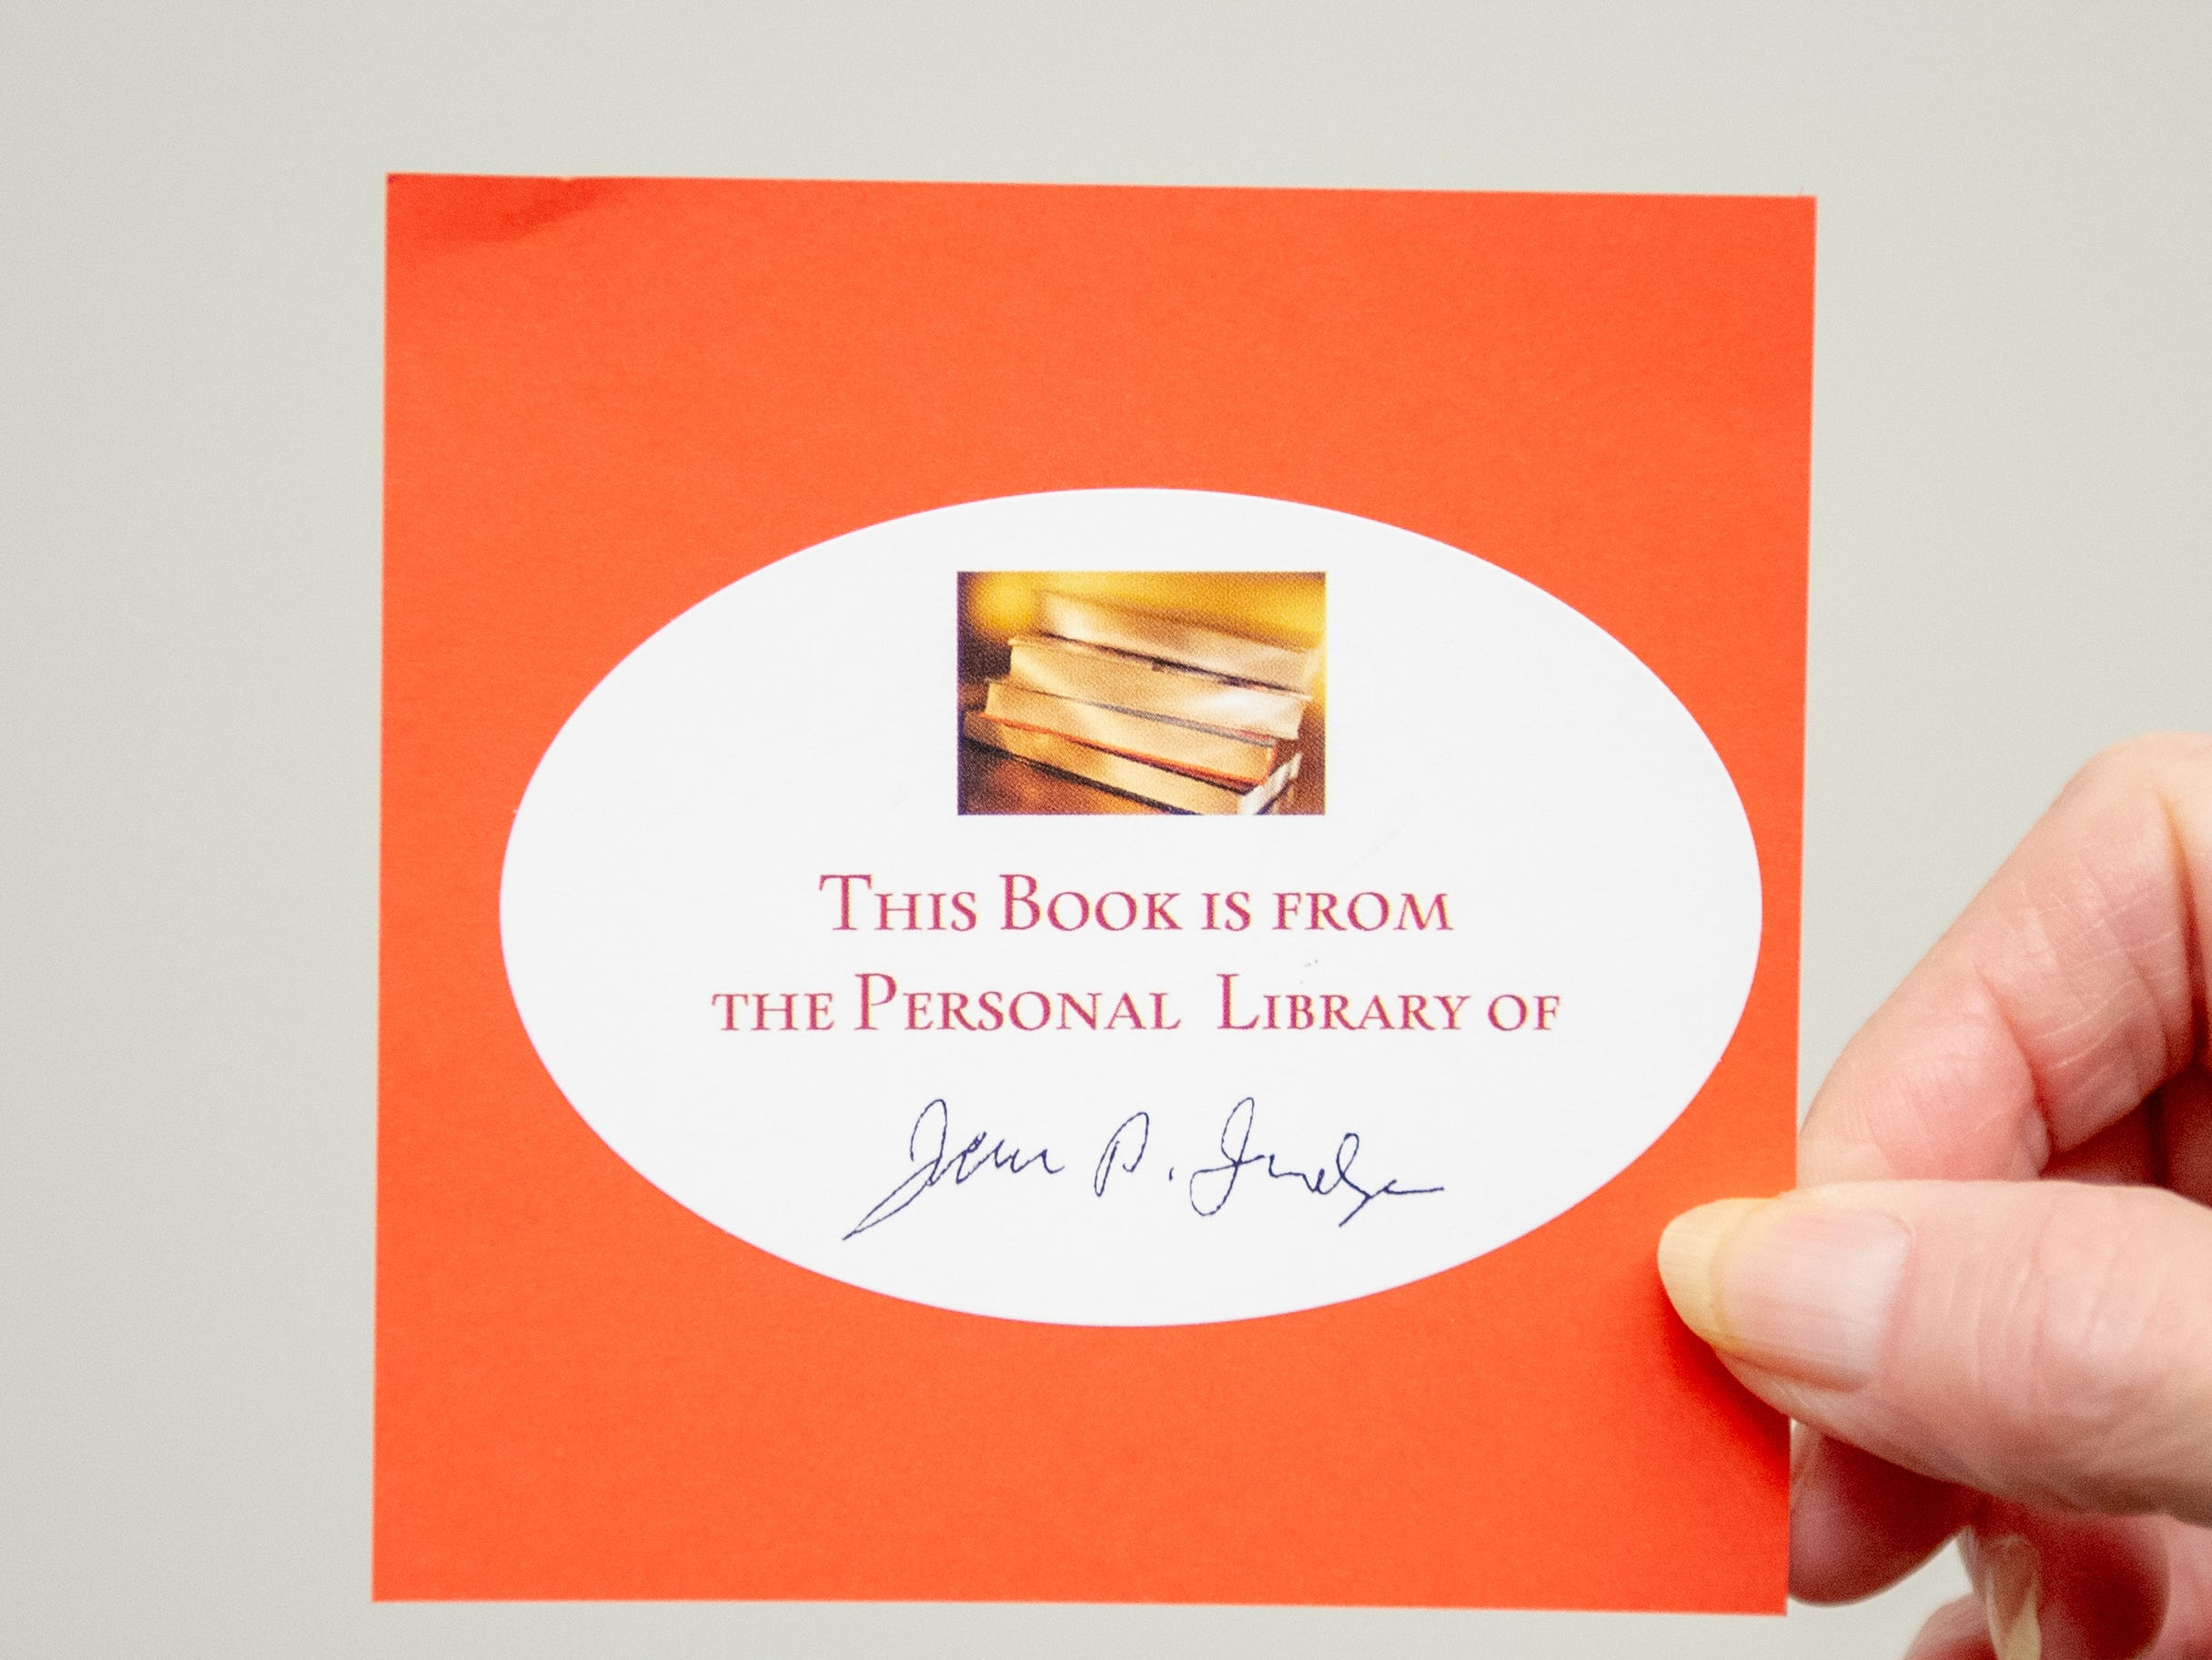 Anyone that buys something from John Judge's personal library will receive this sticker, January12, 2018.